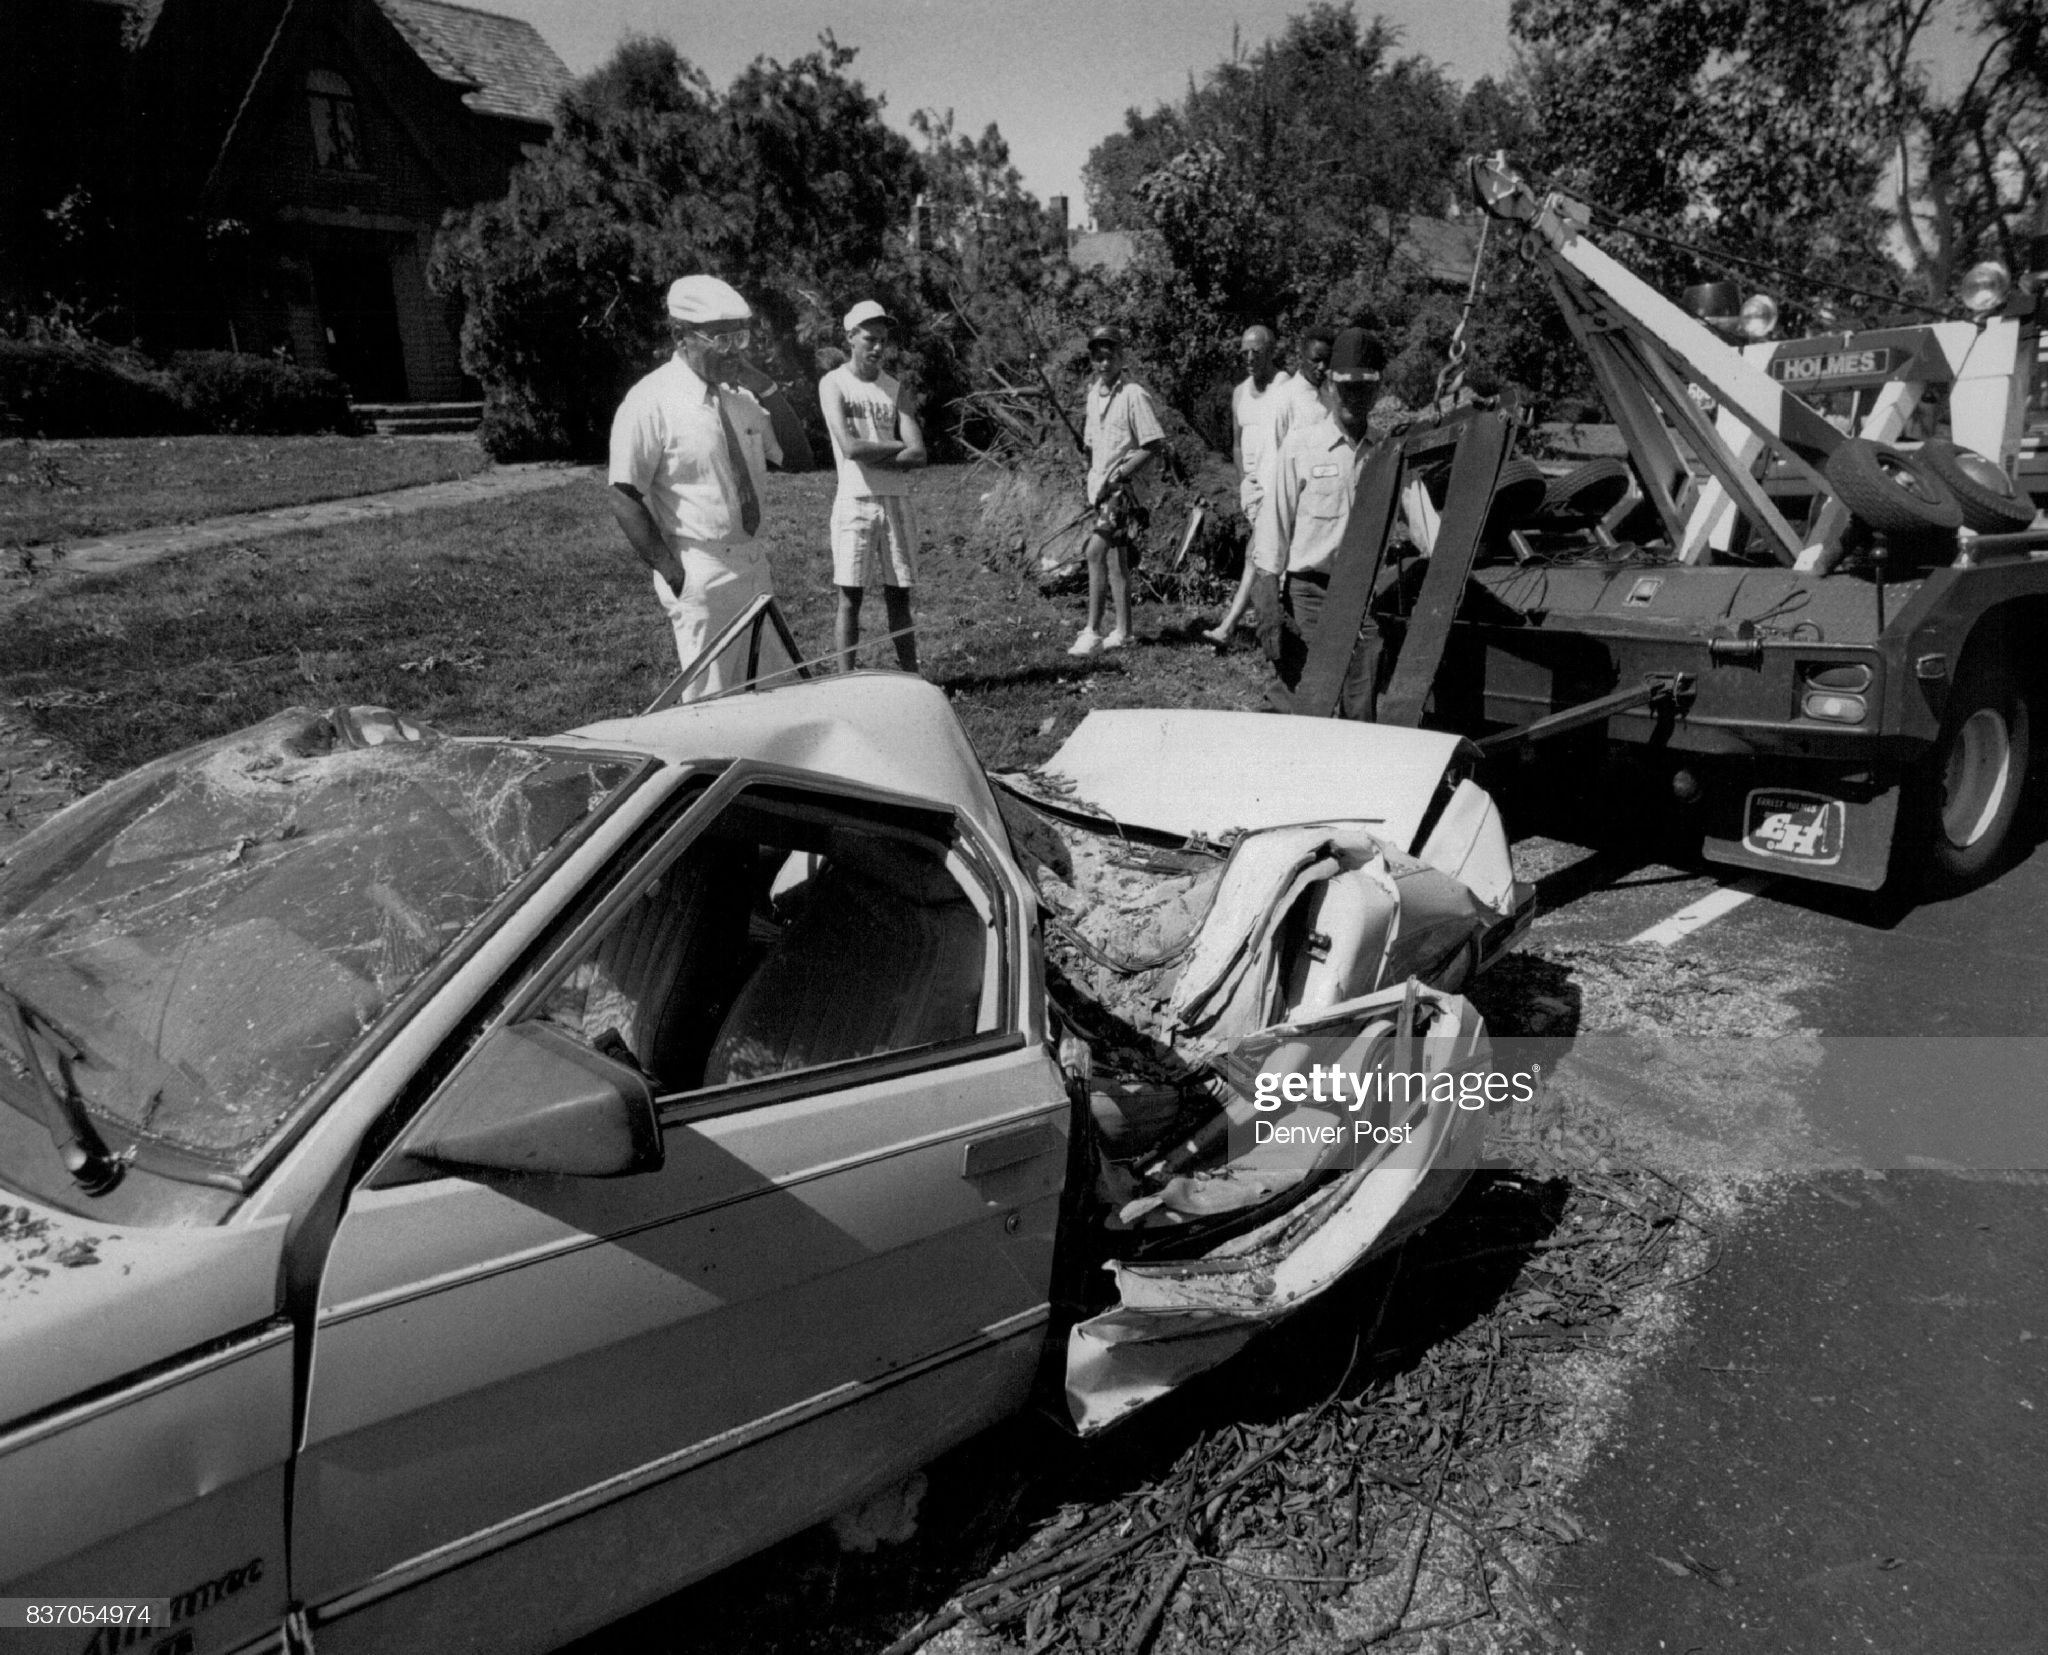 https://media.gettyimages.com/photos/leyden-and-monteciew-tonnado-aftermath-willie-white-looks-at-the-car-picture-id837054974?s=2048x2048